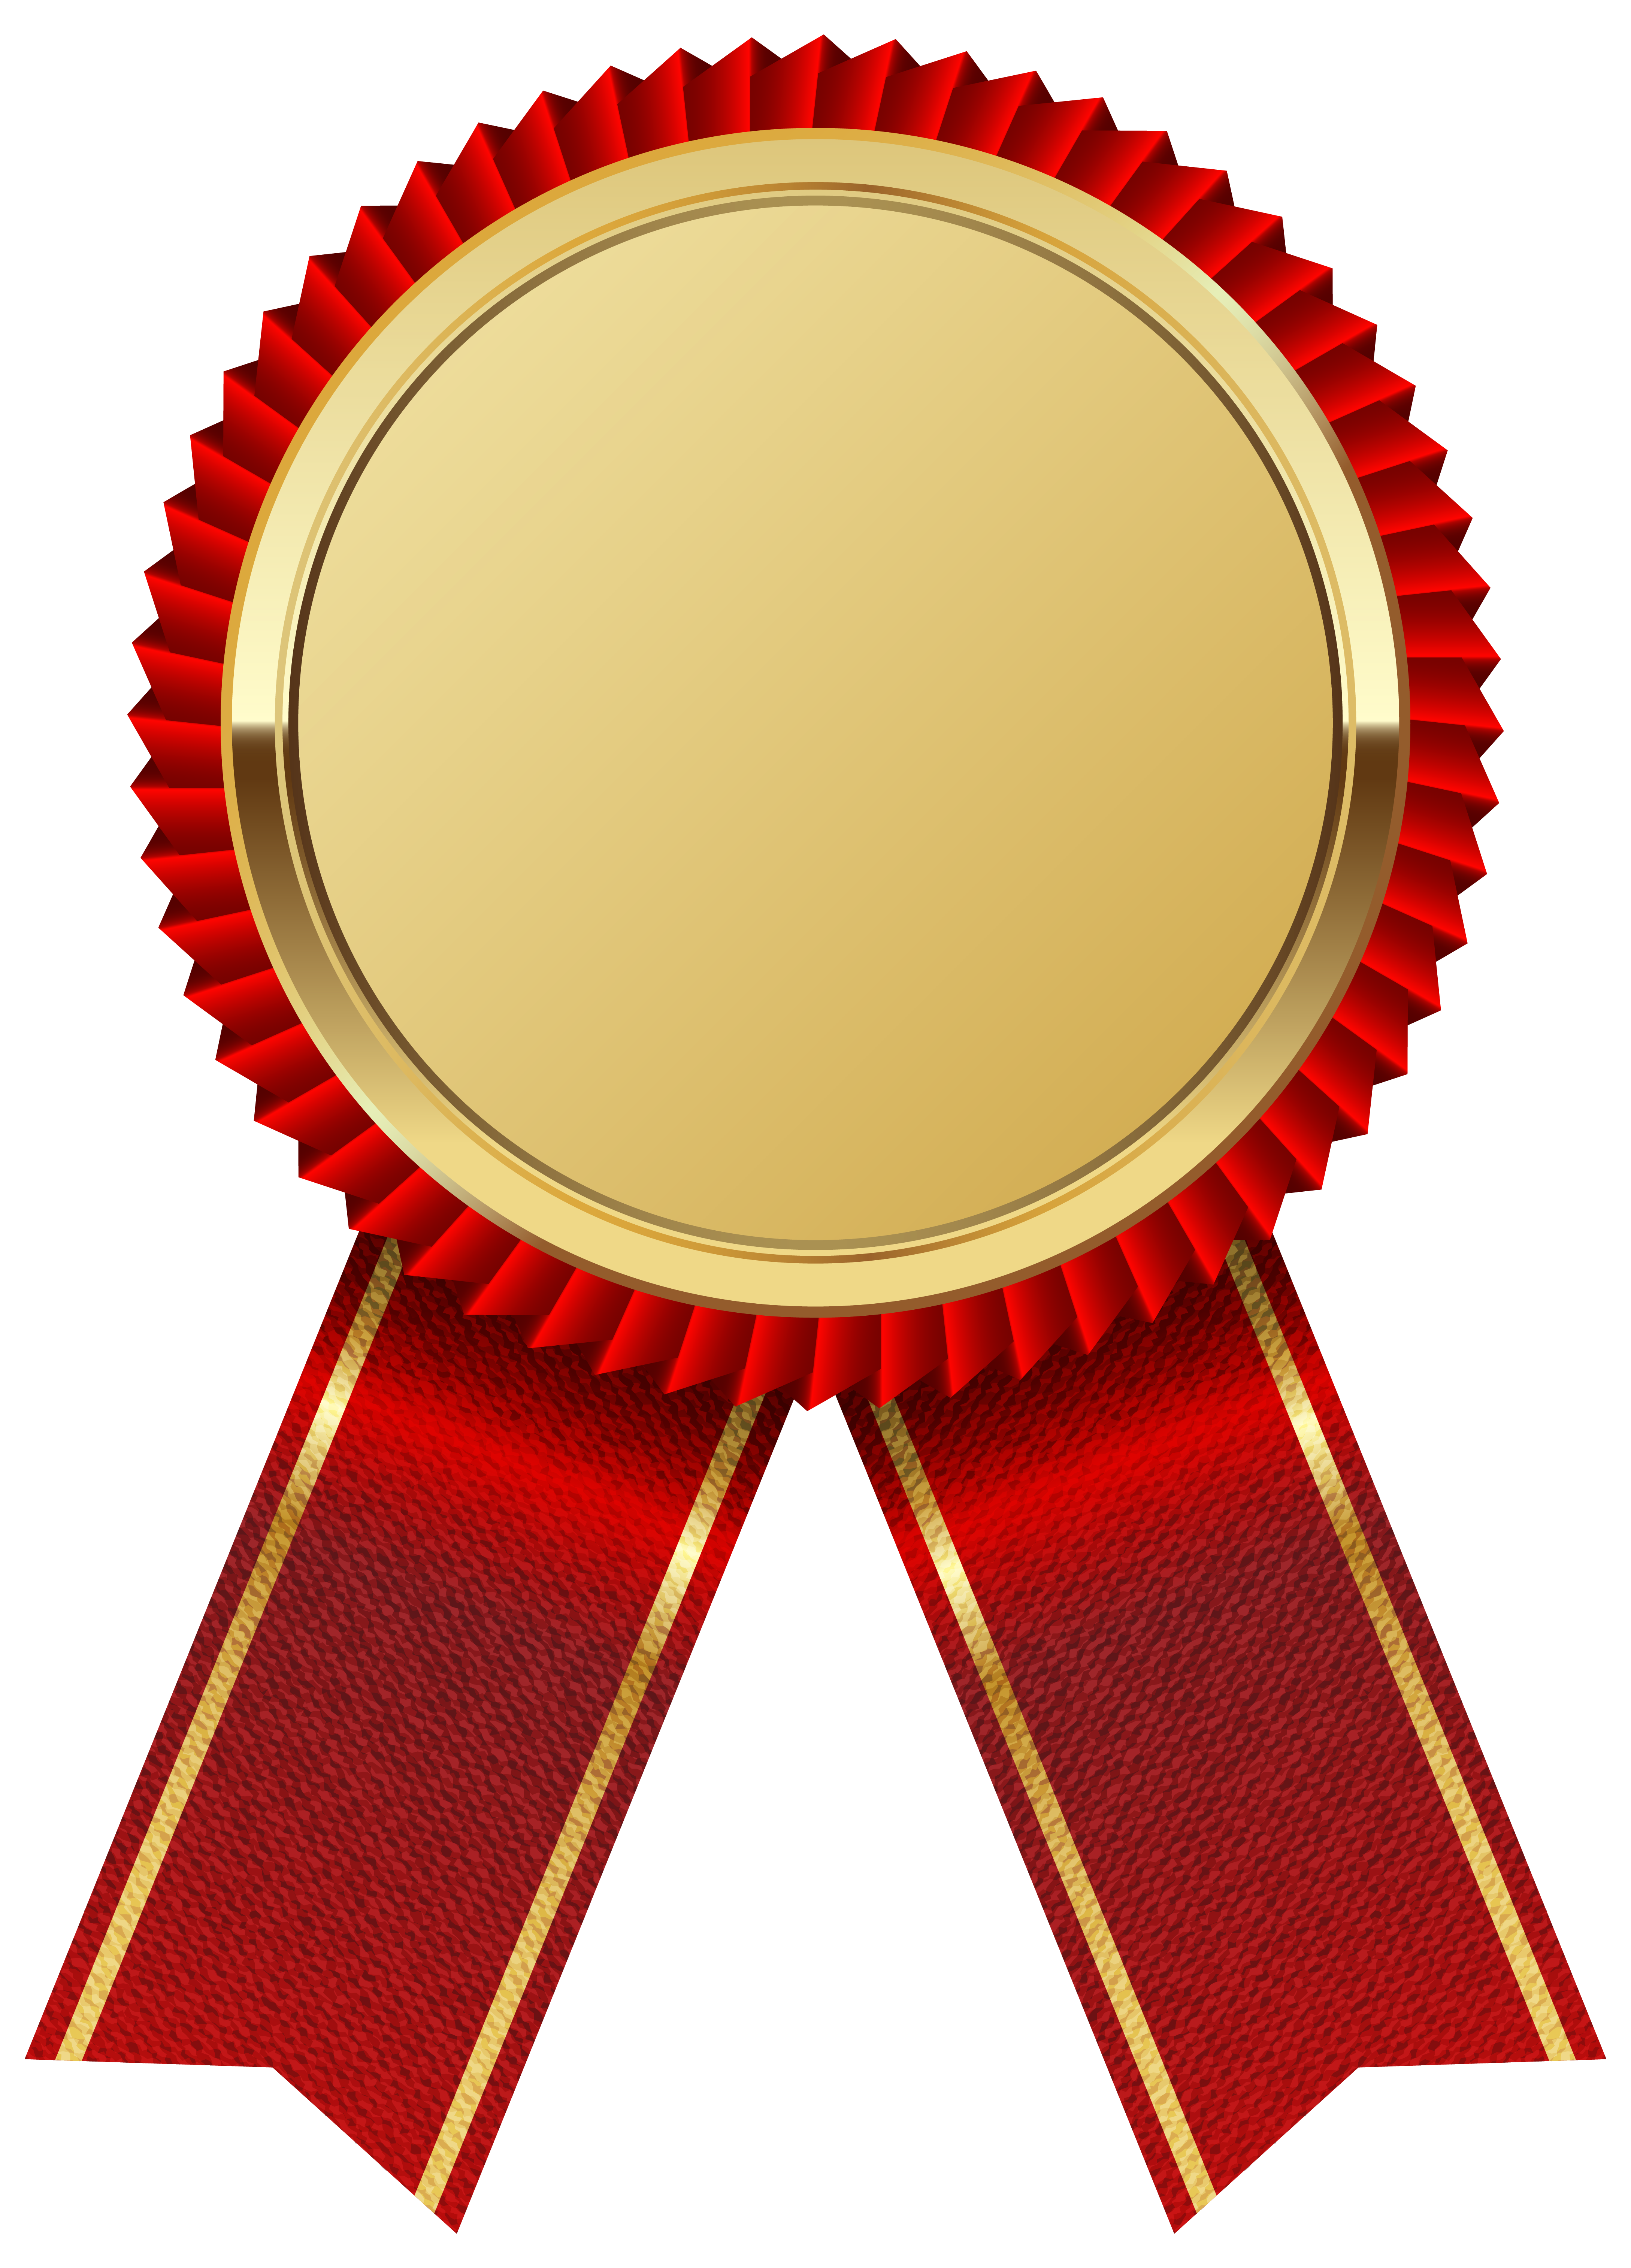 clip art free download Vector certificate round. Gold medal with red